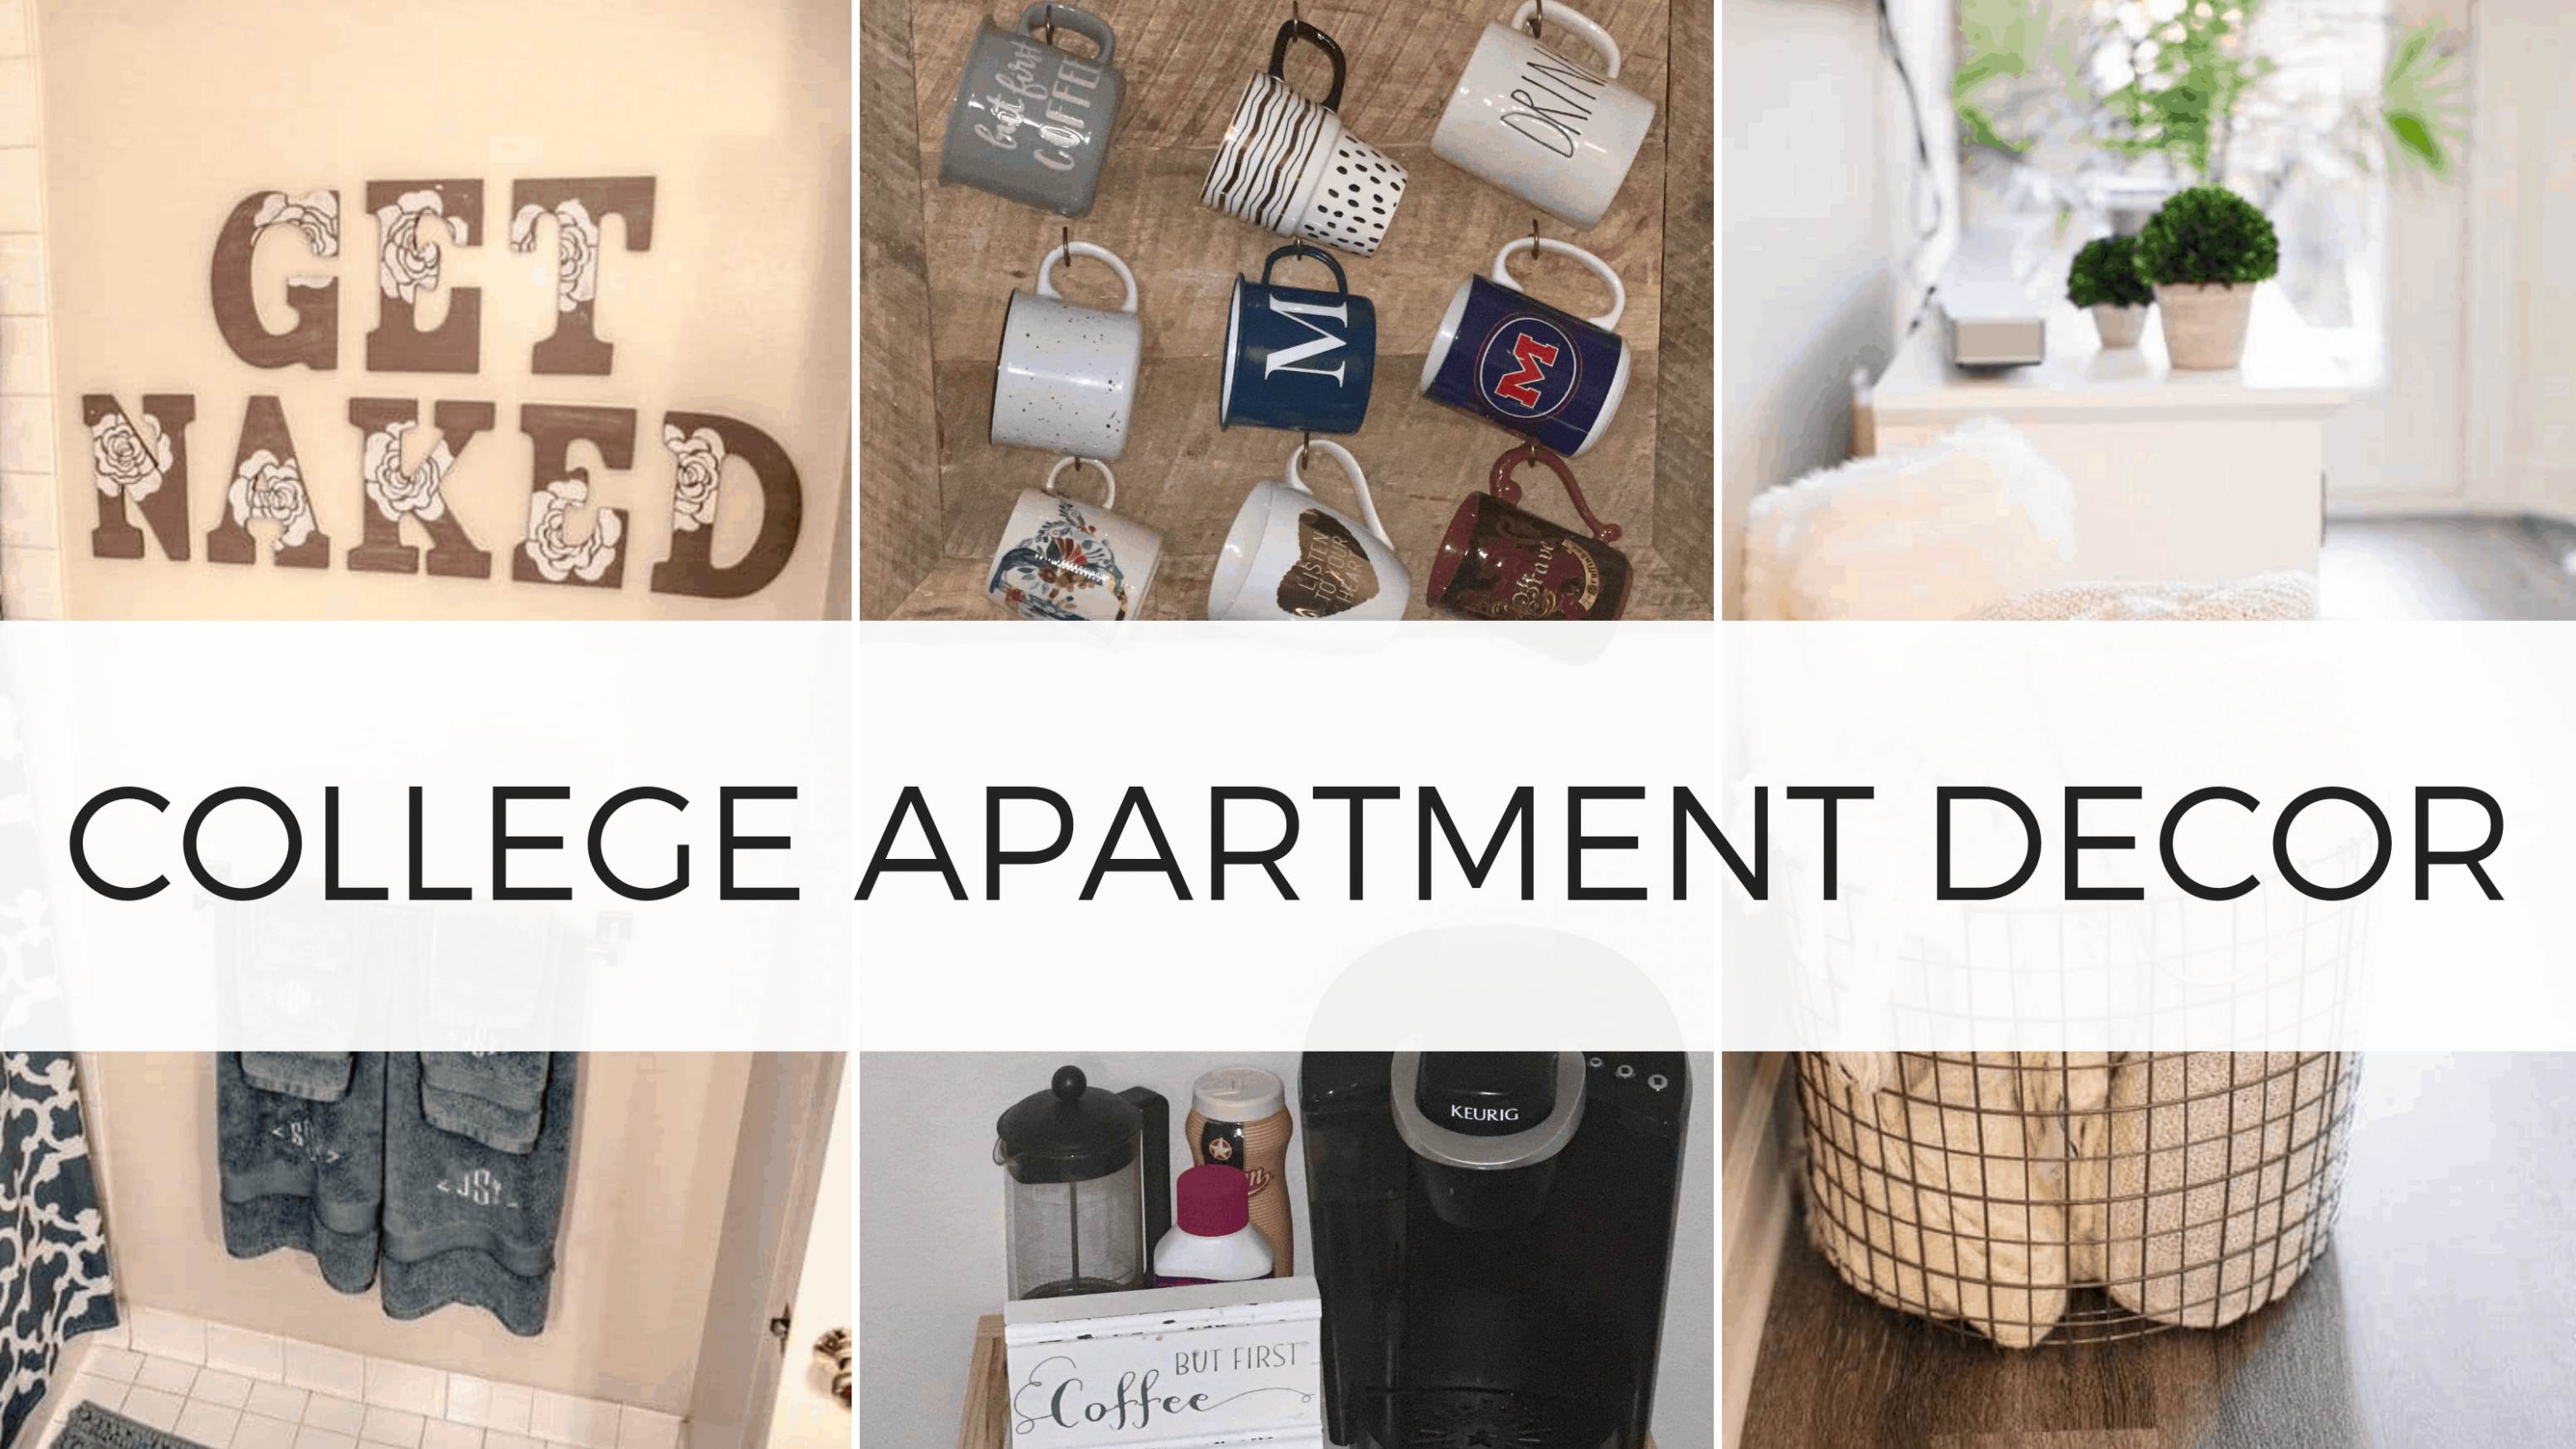 11 Best College Apartment Decor Ideas You Need To Copy - By Sophia Lee - Apartment Decorating Ideas College Students